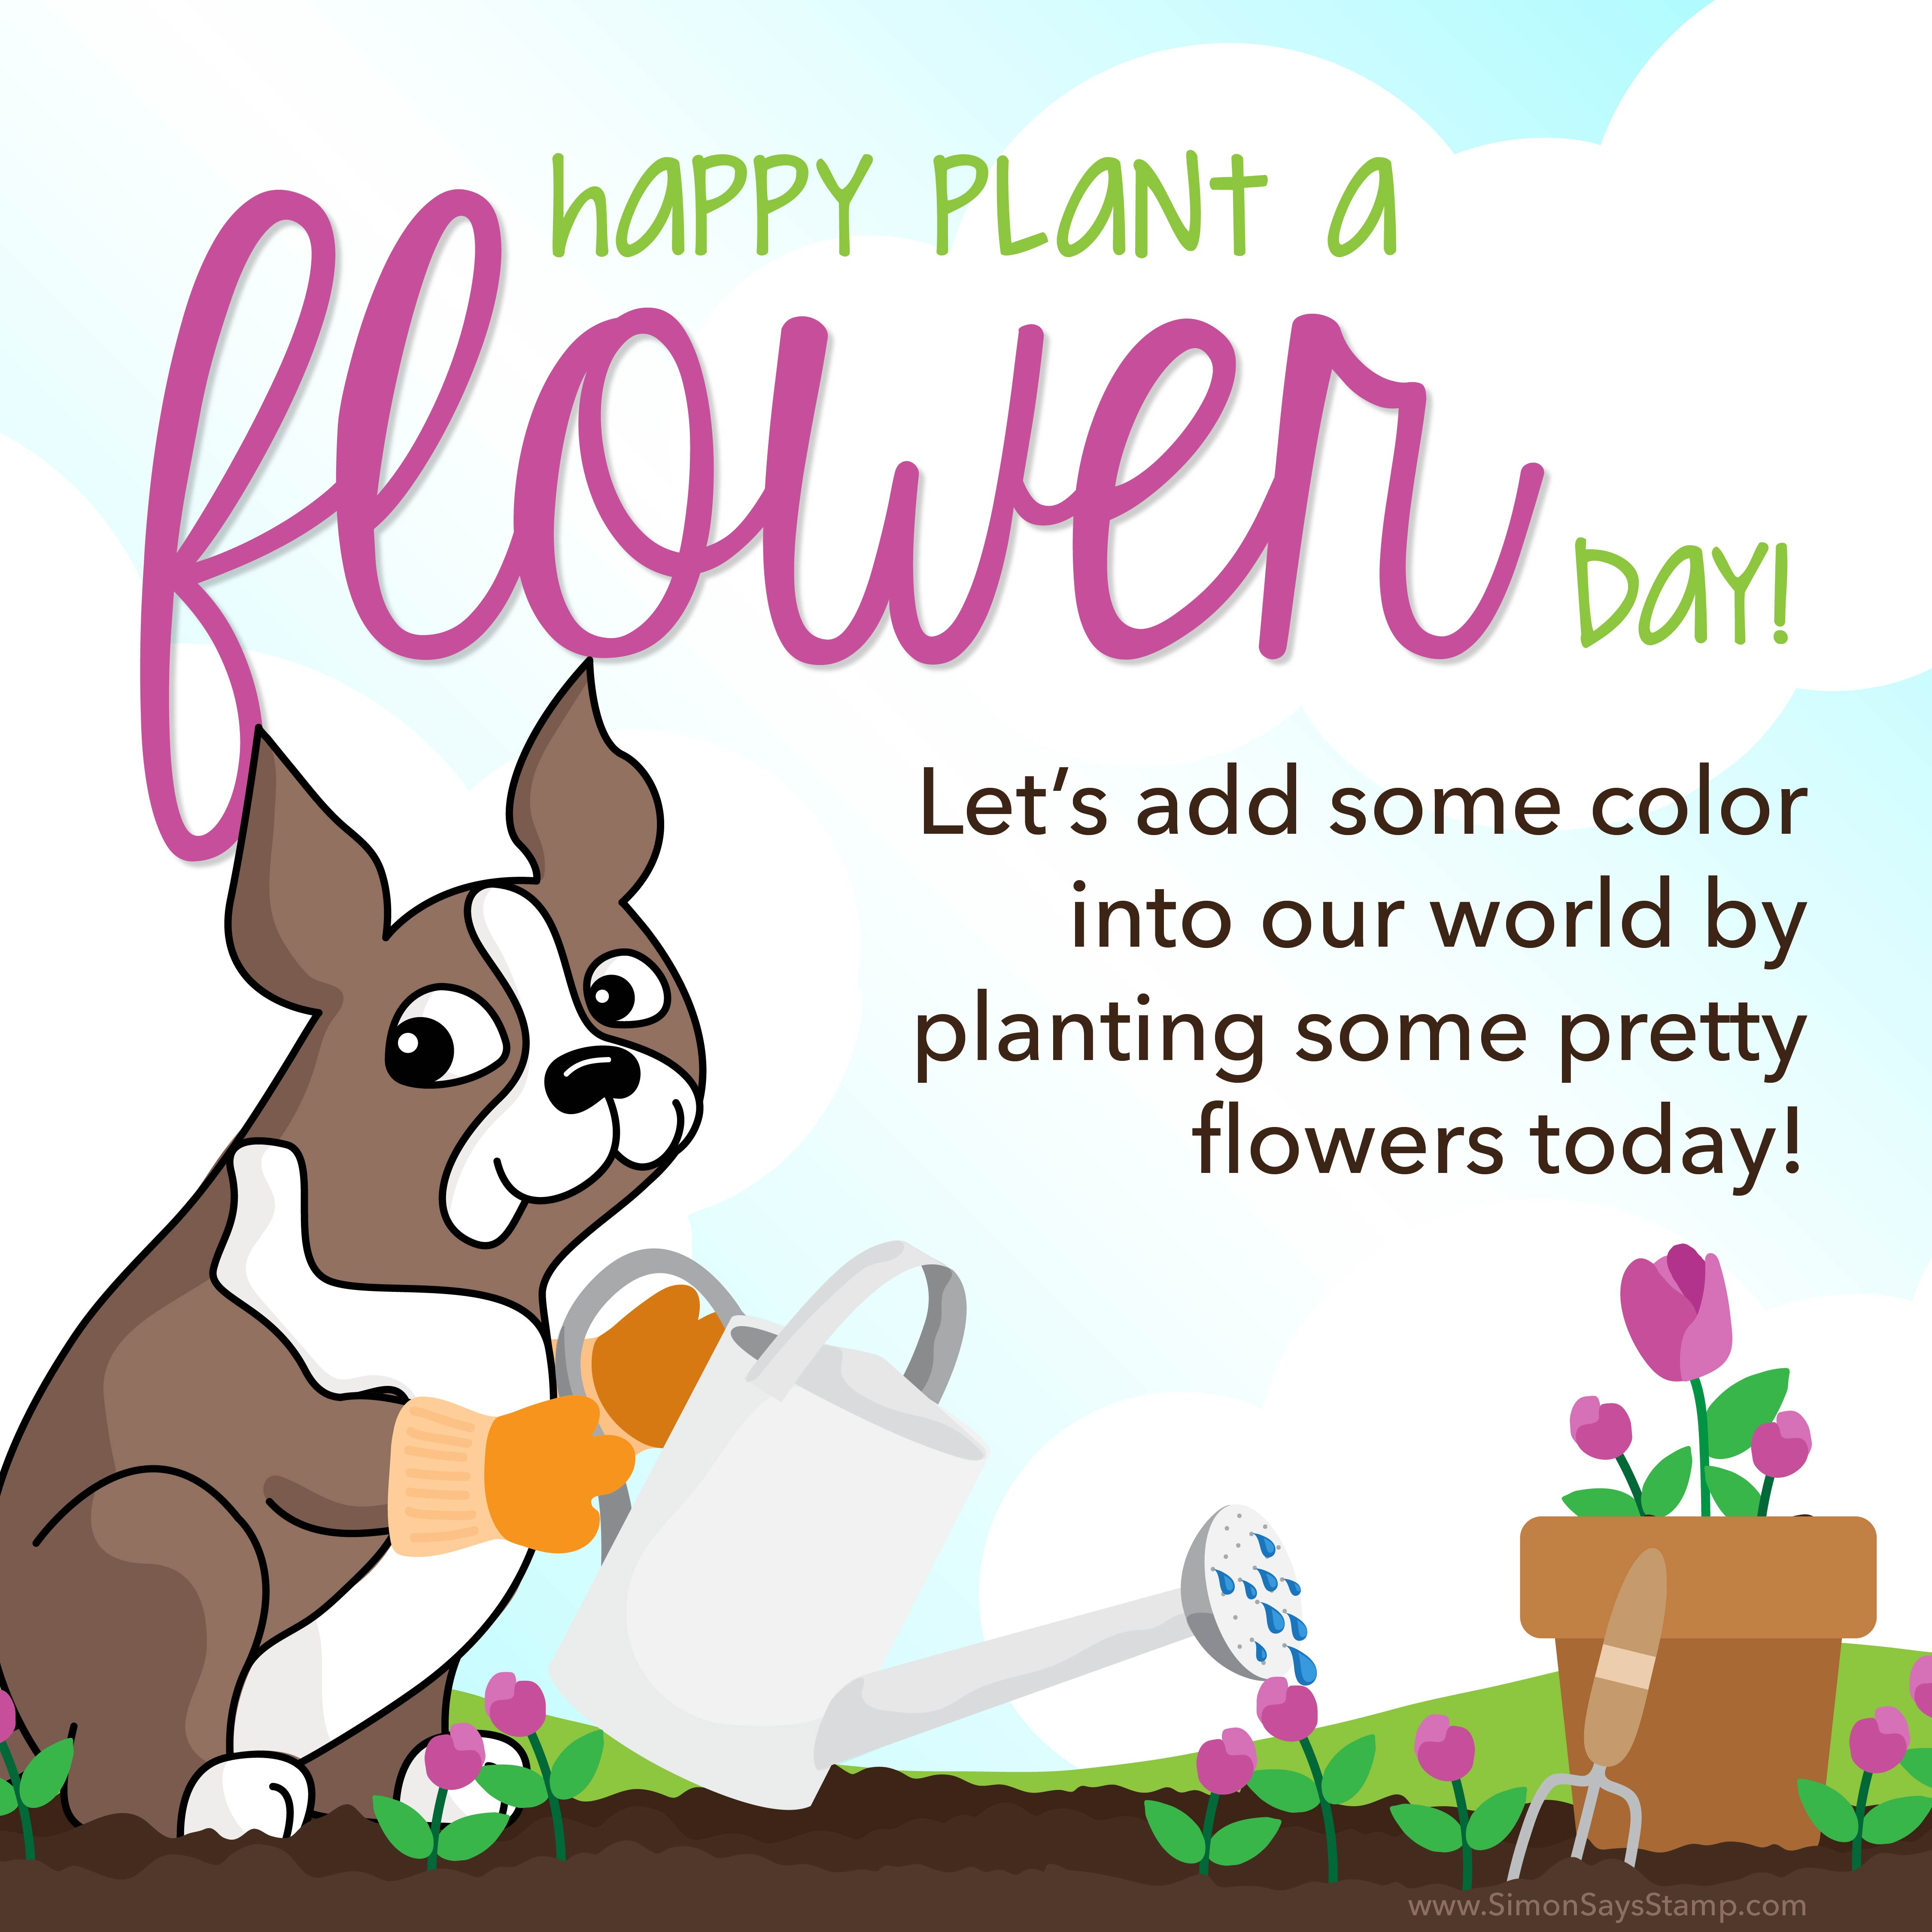 plant-a-flower-day_1080-01